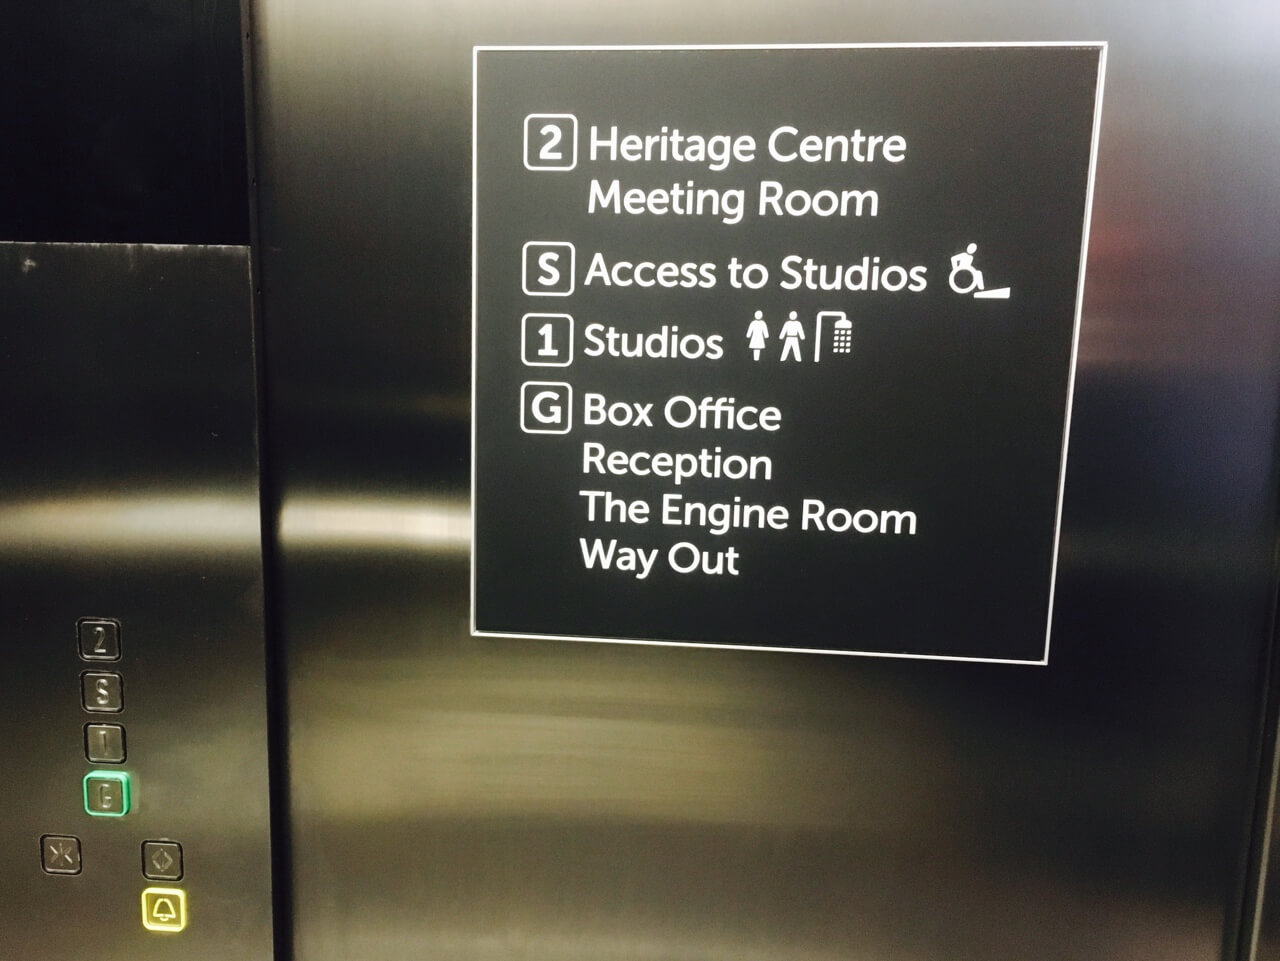 A lift sign highlighting the relevant floors